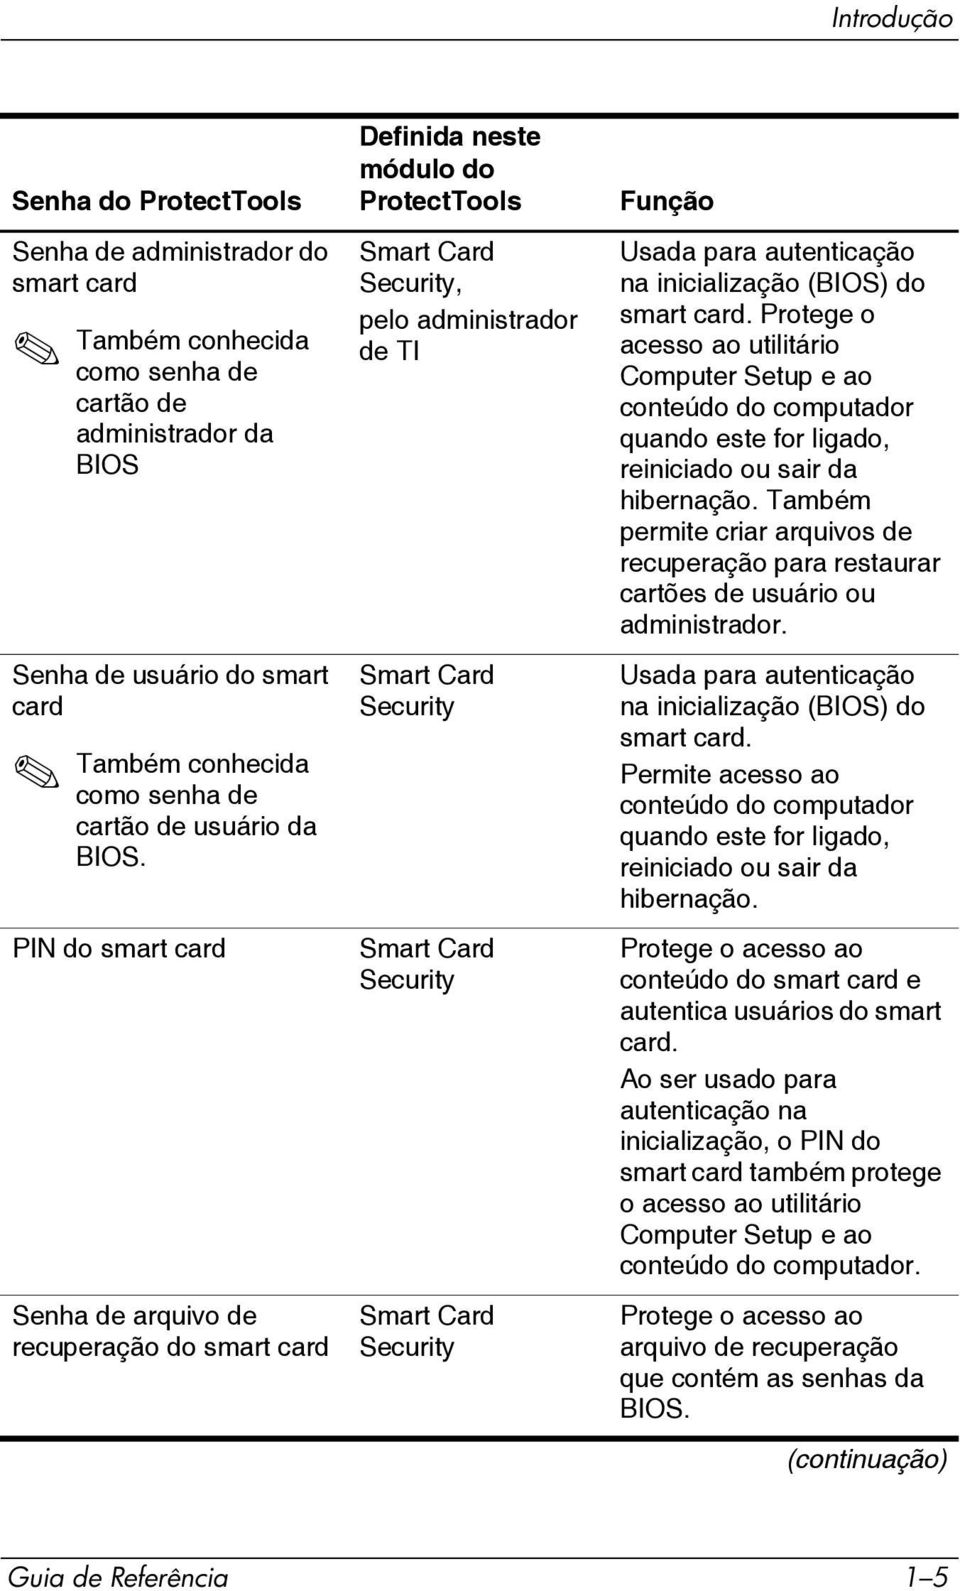 PIN do smart card Senha de arquivo de recuperação do smart card Definida neste módulo do ProtectTools Smart Card Security, pelo administrador de TI Smart Card Security Smart Card Security Smart Card